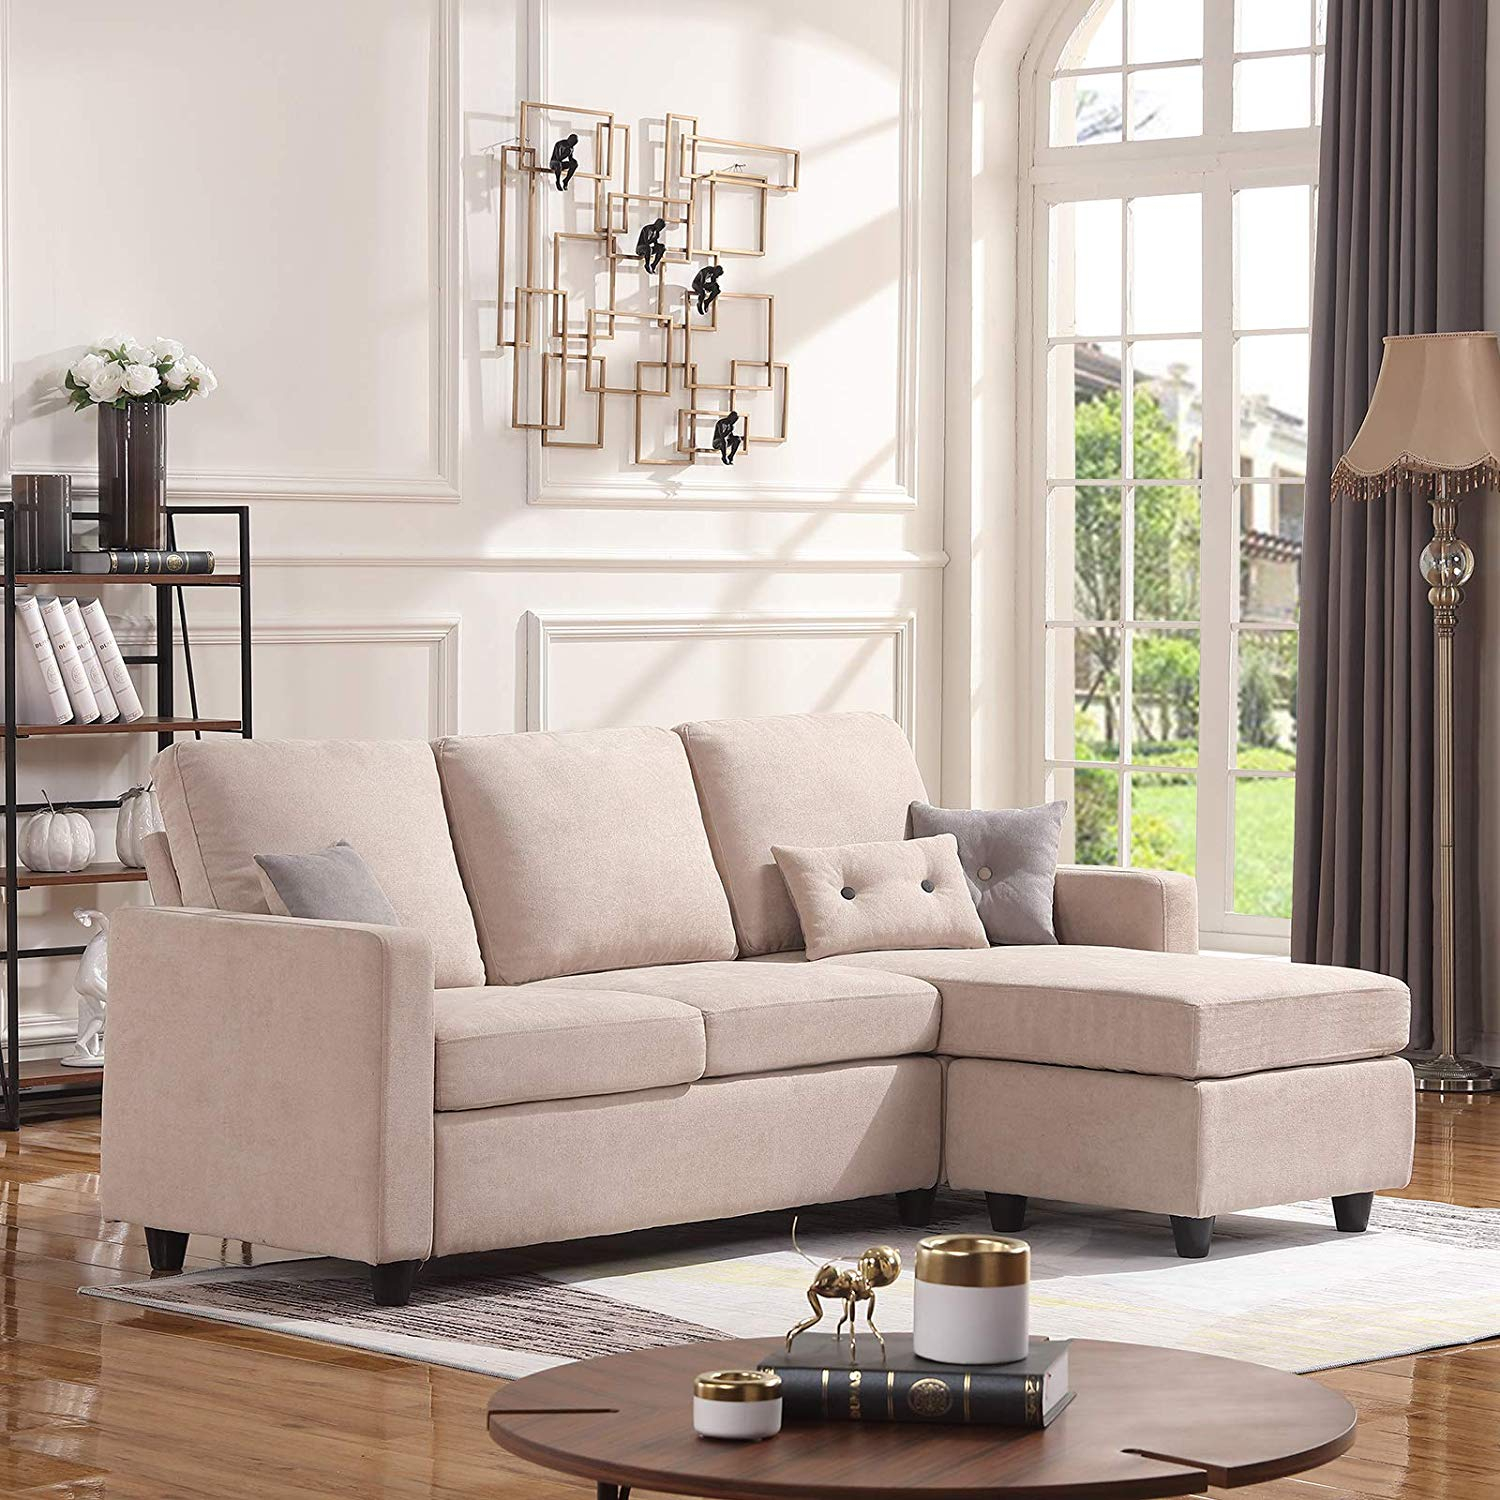 Details about Convertible Sectional Sofa Couch L-Shaped Modern Linen Fabric  Small Space